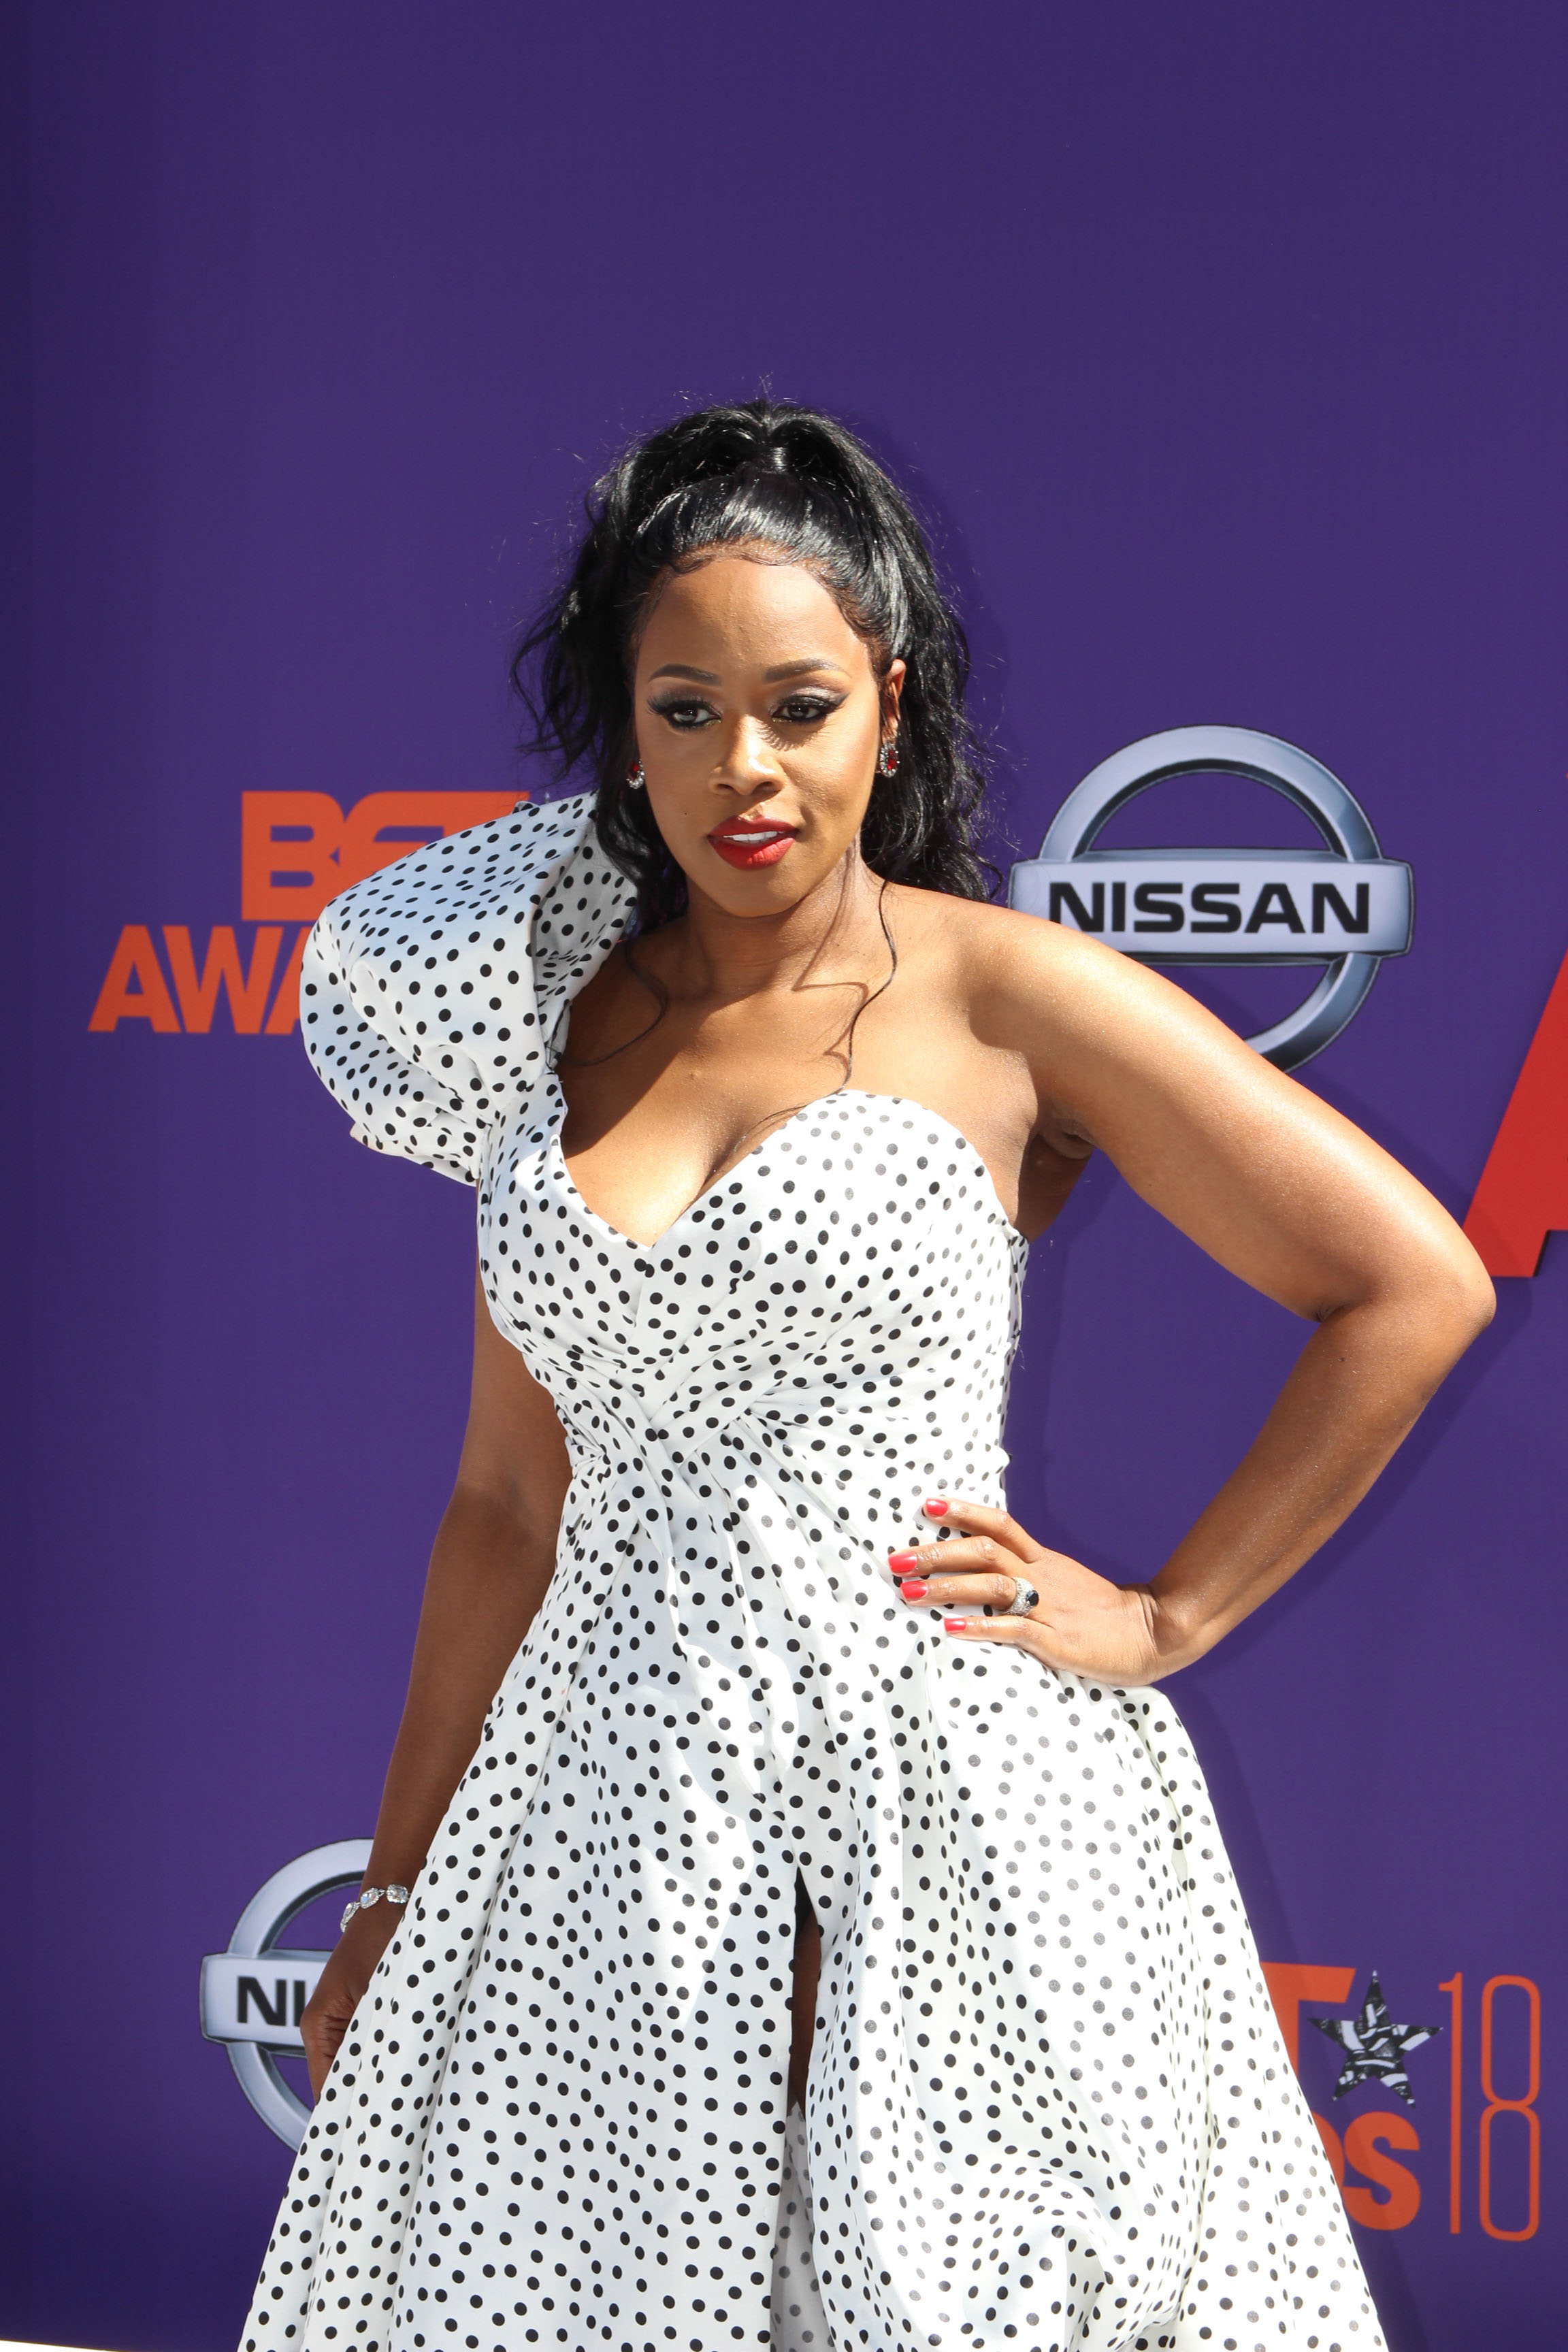 Remy Ma On Non-Blacks Using The N-Word: 'We Have Wayyy More Important Pressing Issues'